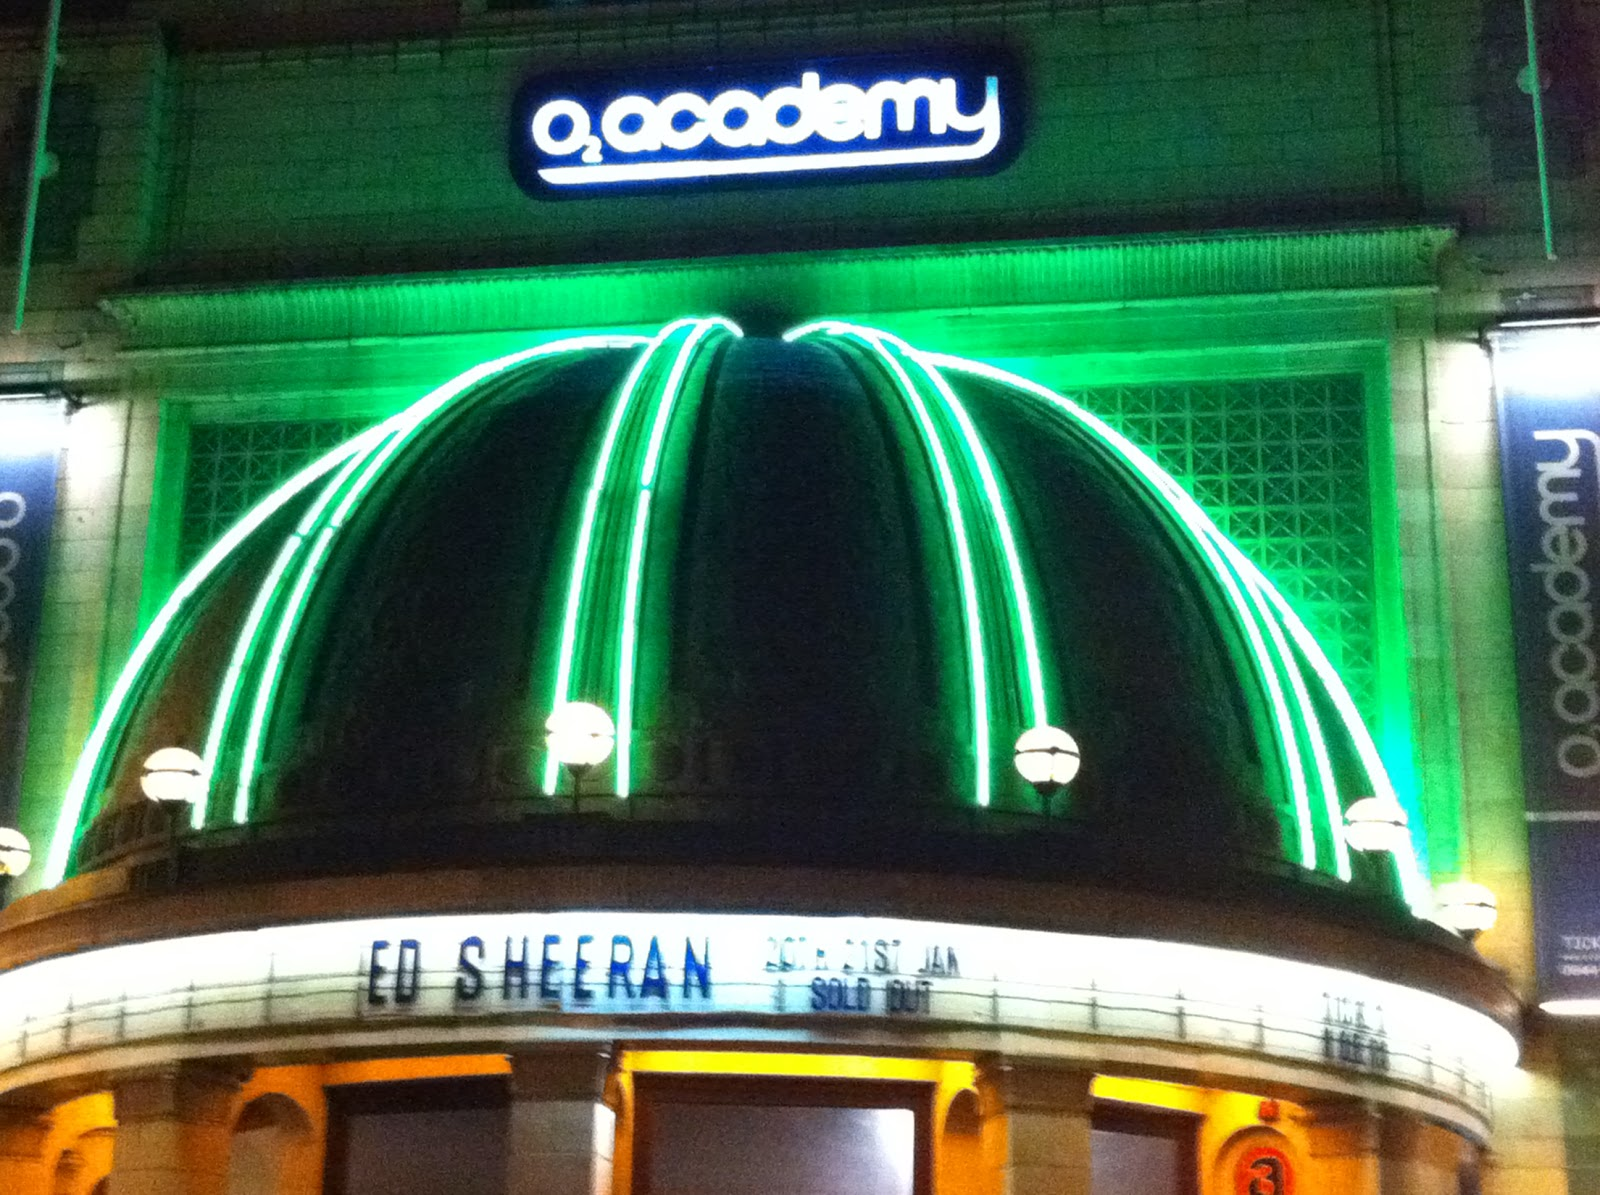 Sofa Lyrics By Ed Sheeran Ed Sheeran Brixton O2 Academy 21st January The Gizzle Review